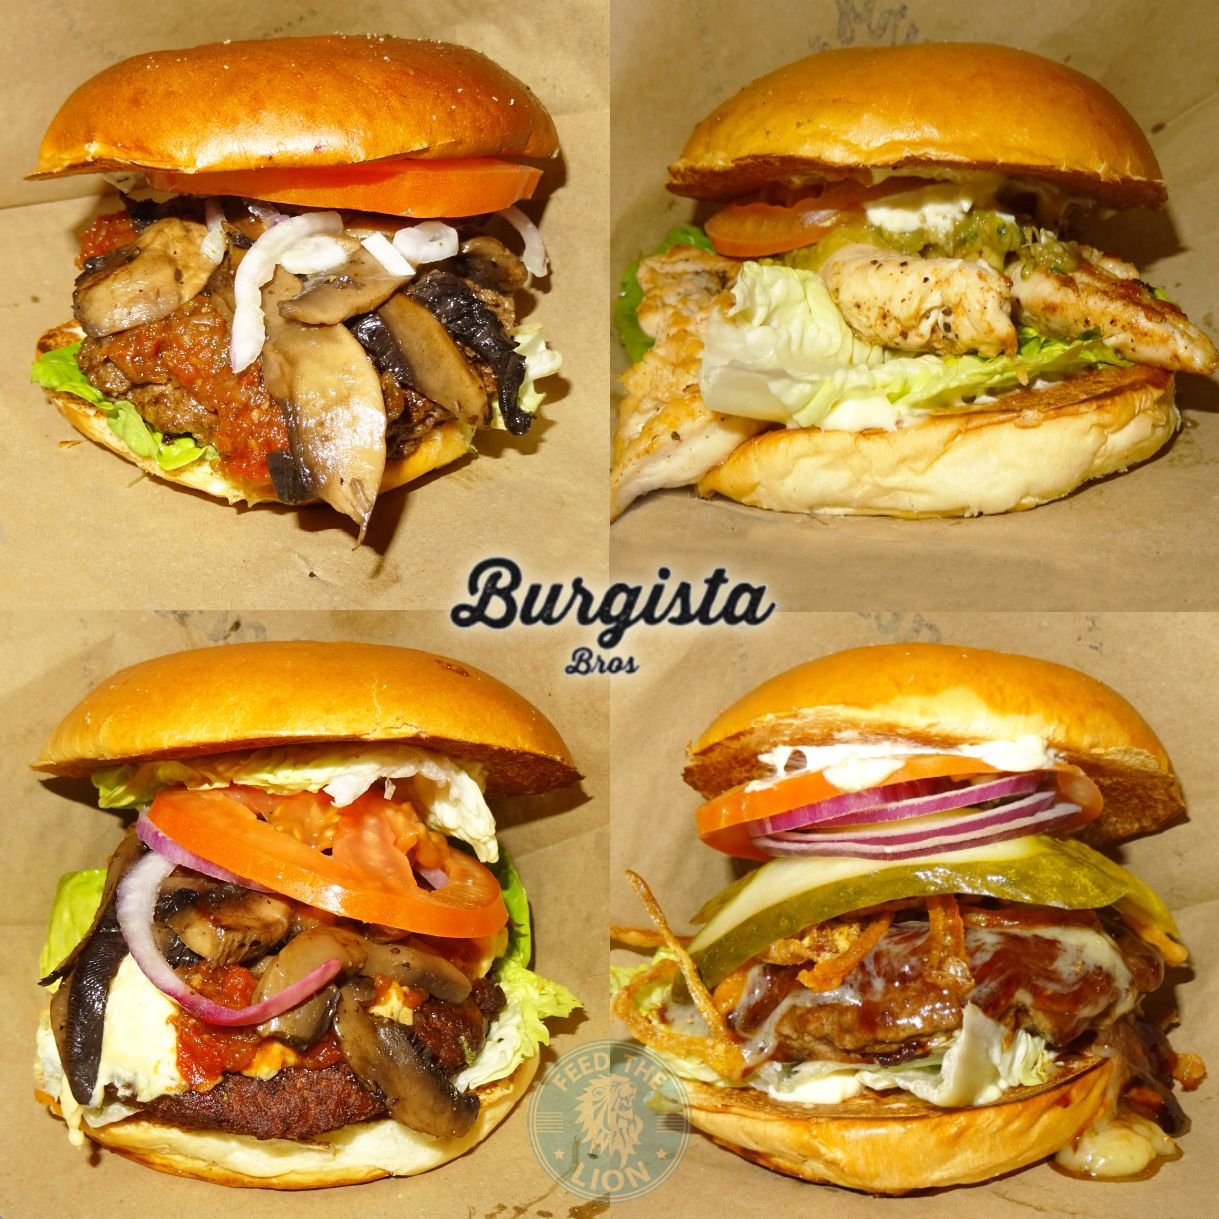 brioche burger the art of gourmet burgers in the heart of east